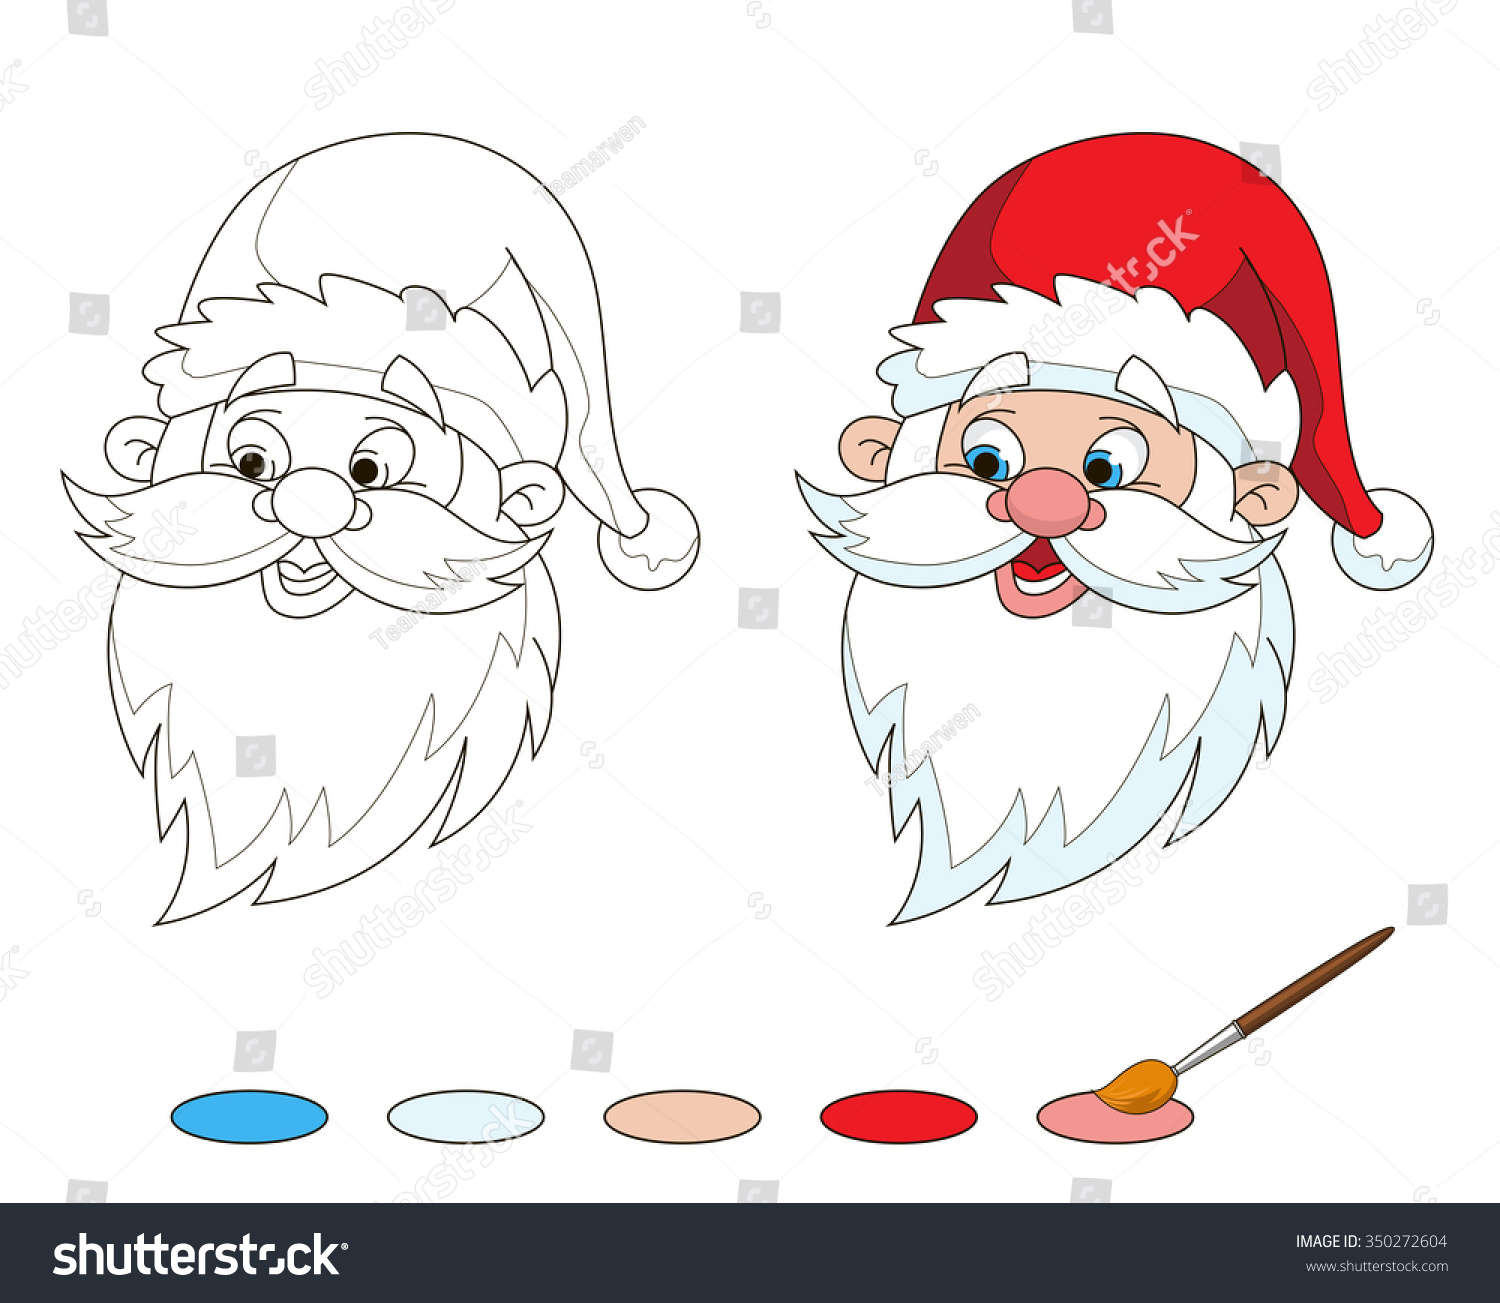 Santa Beard Coloring Page With Santas Head Stock Vector Royalty Free 350272604